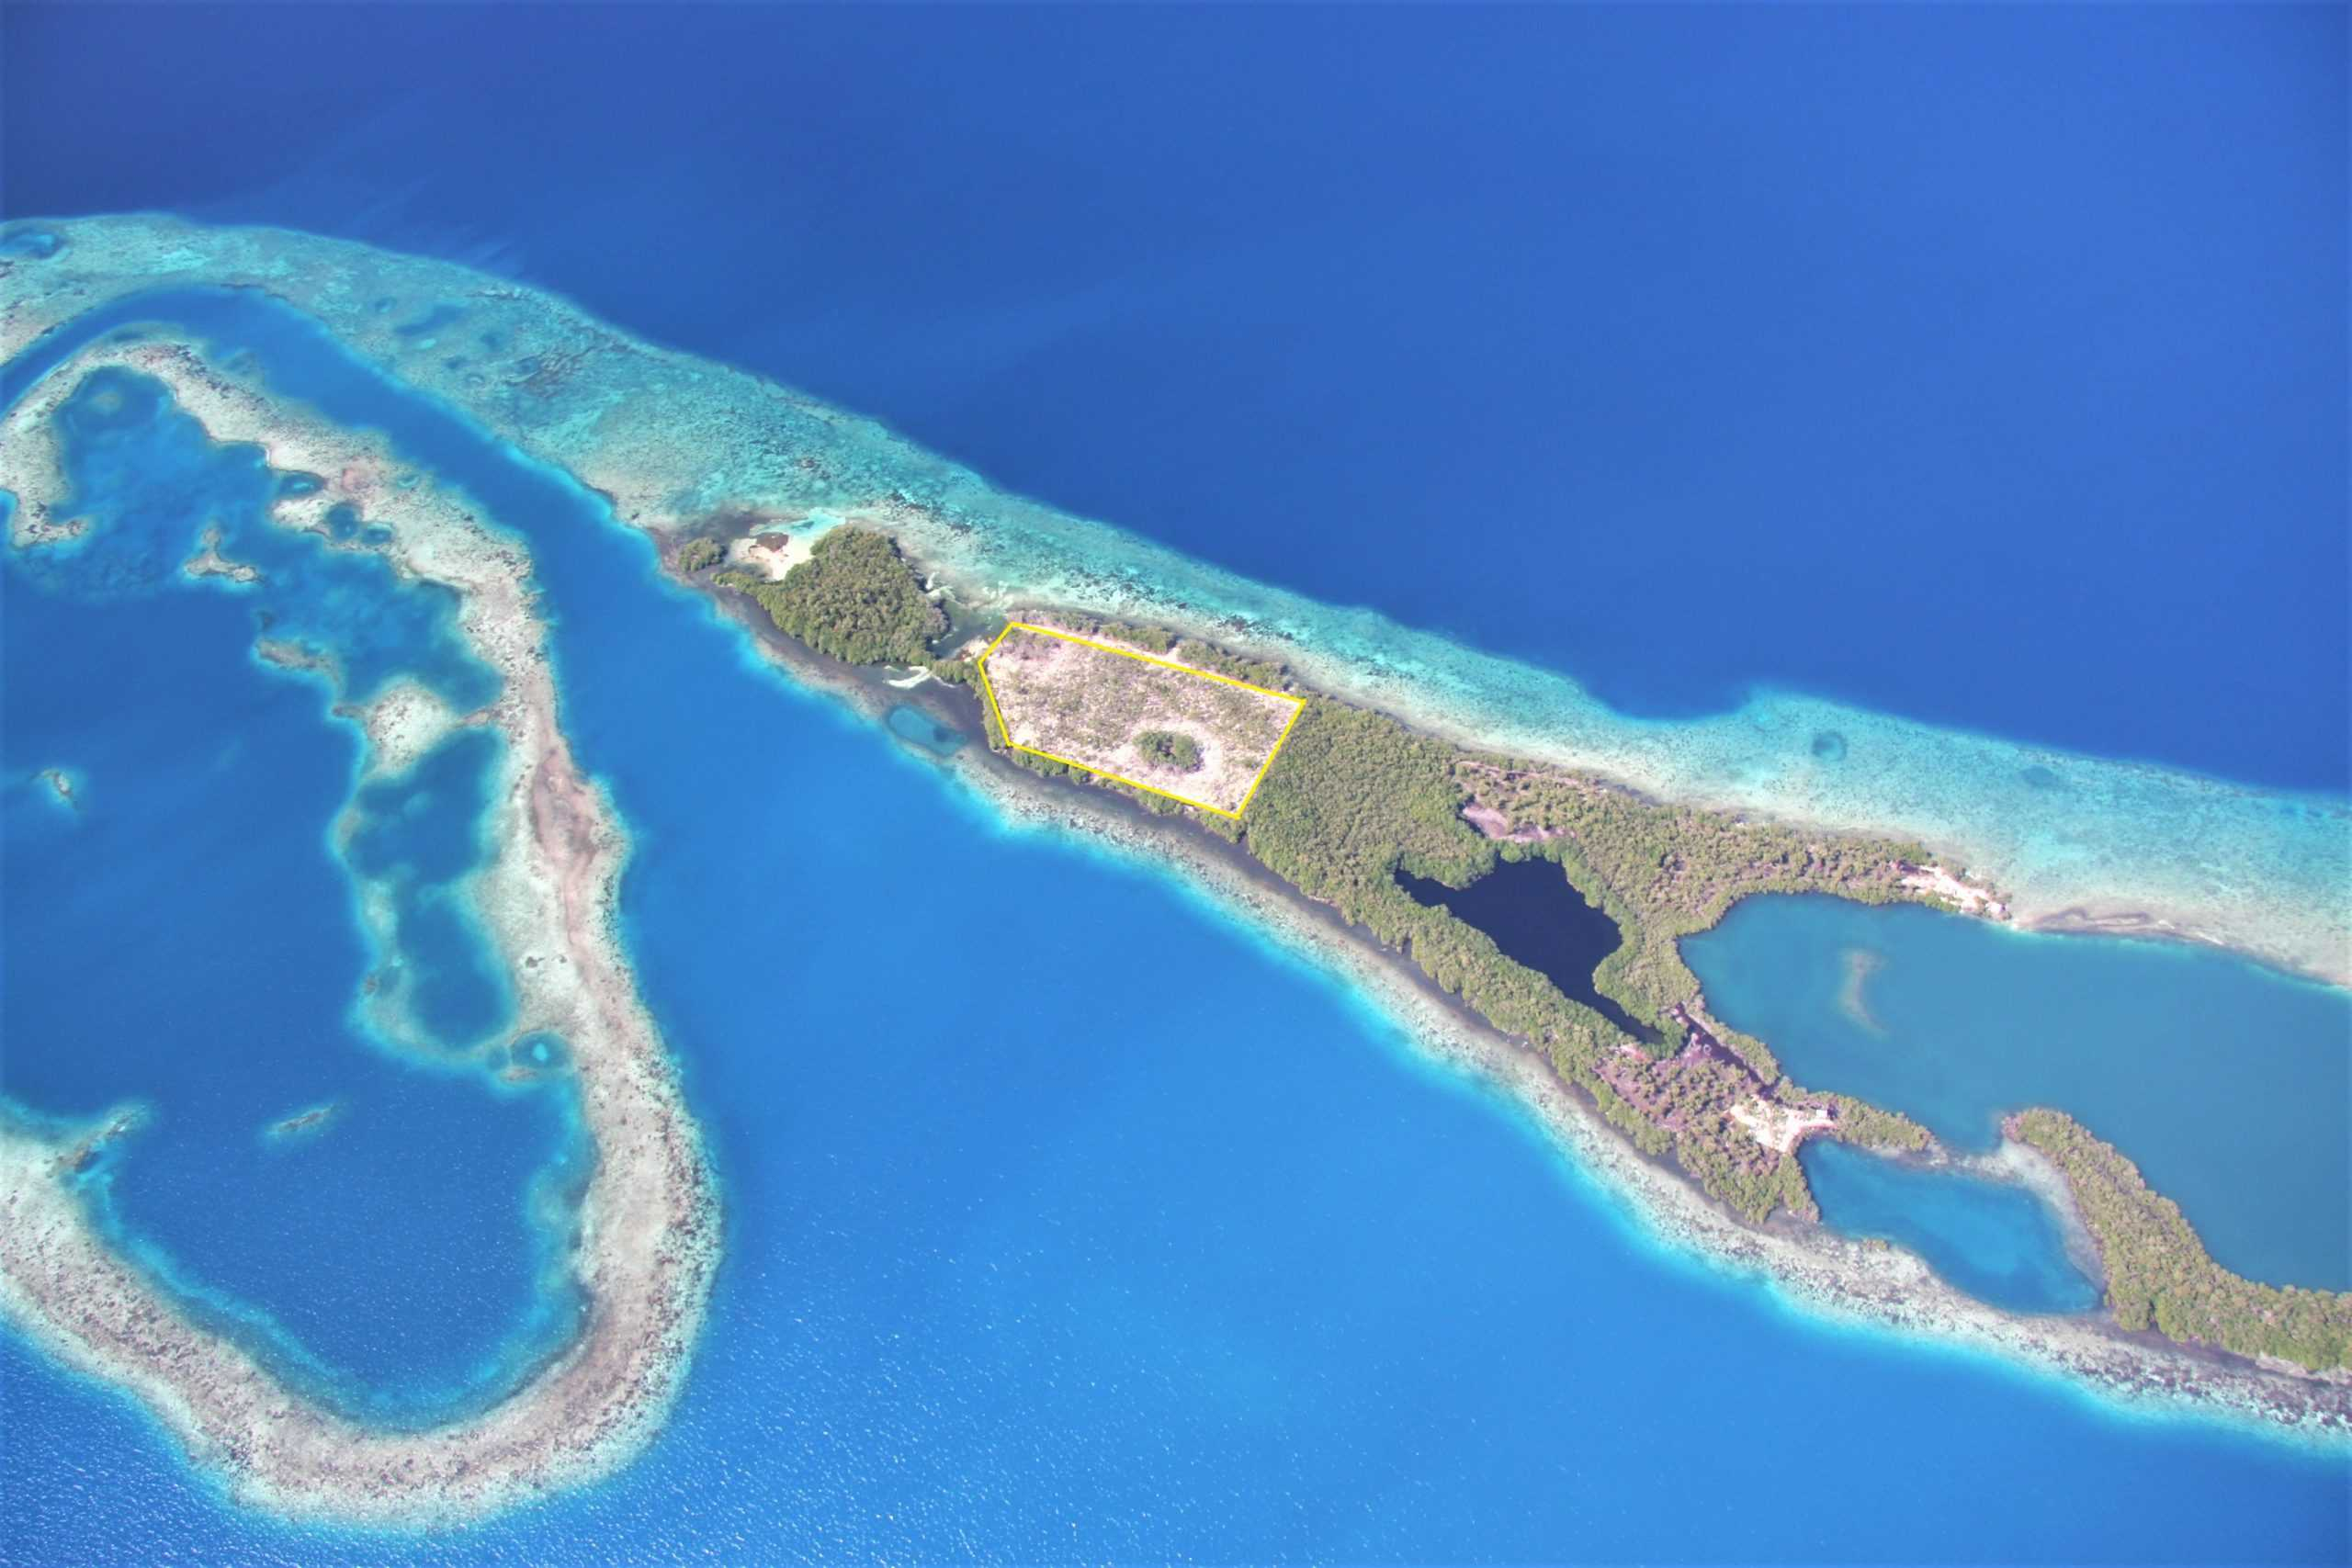 I15: 5.915 Acres Semi-Developed on Larger Island in Southern Belize! Buy a Piece of an Island in Belize!